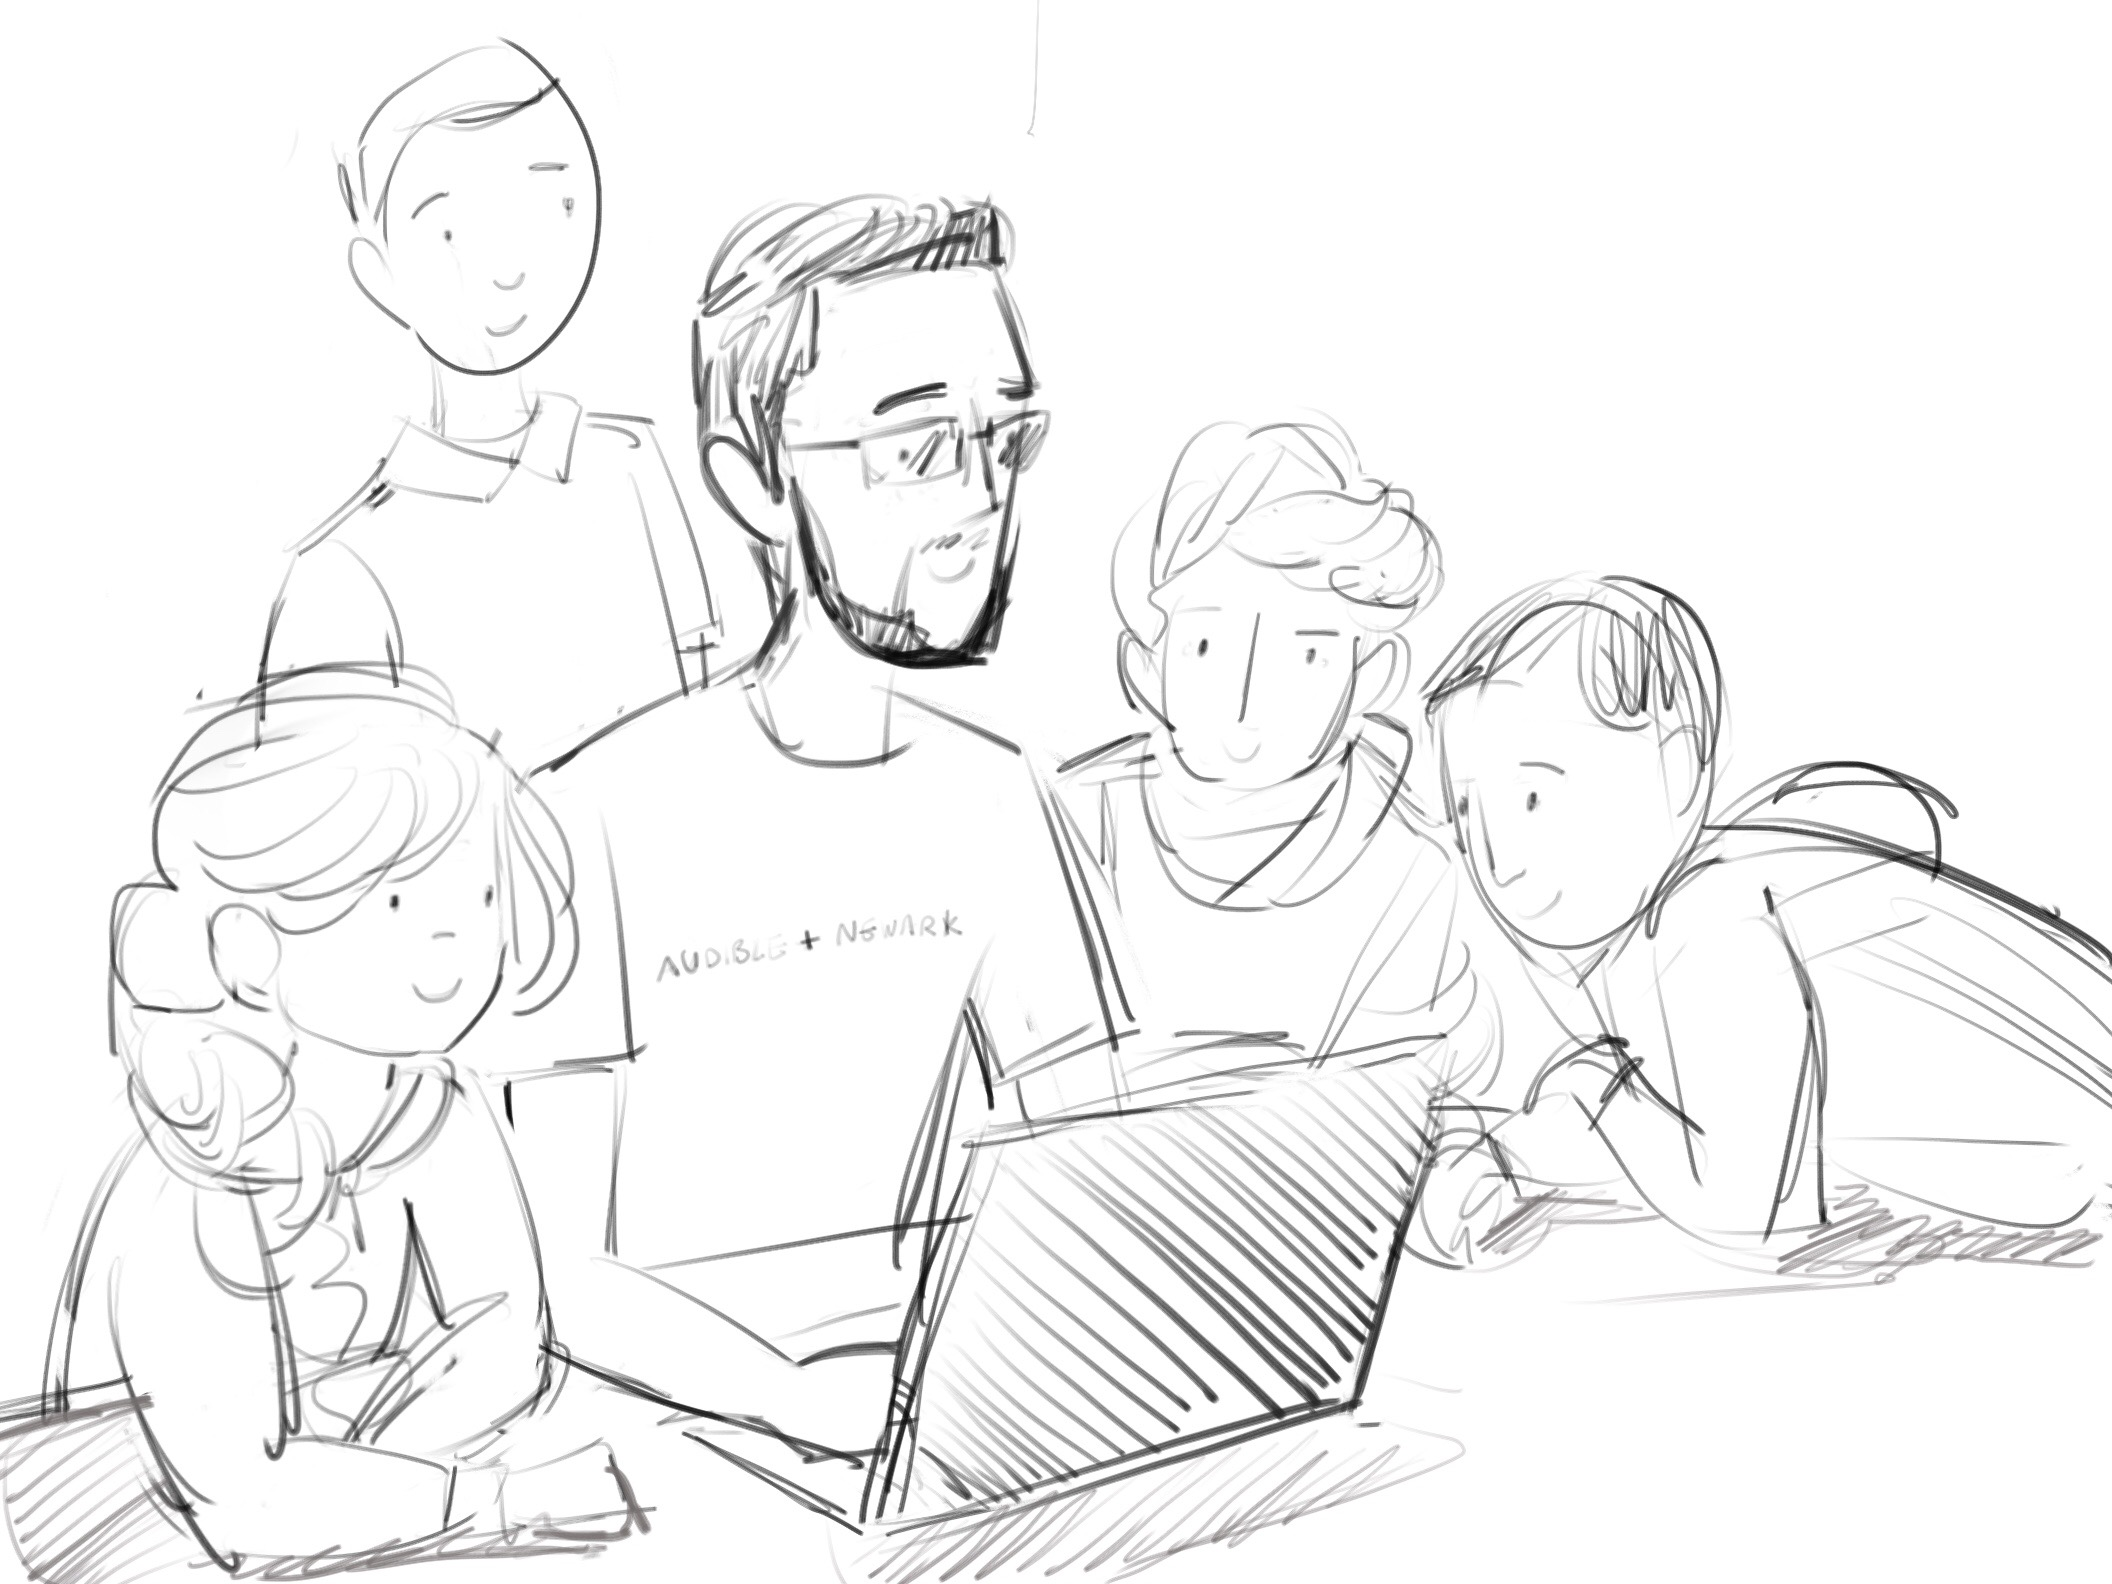 Illustration of Audible employee mentoring students